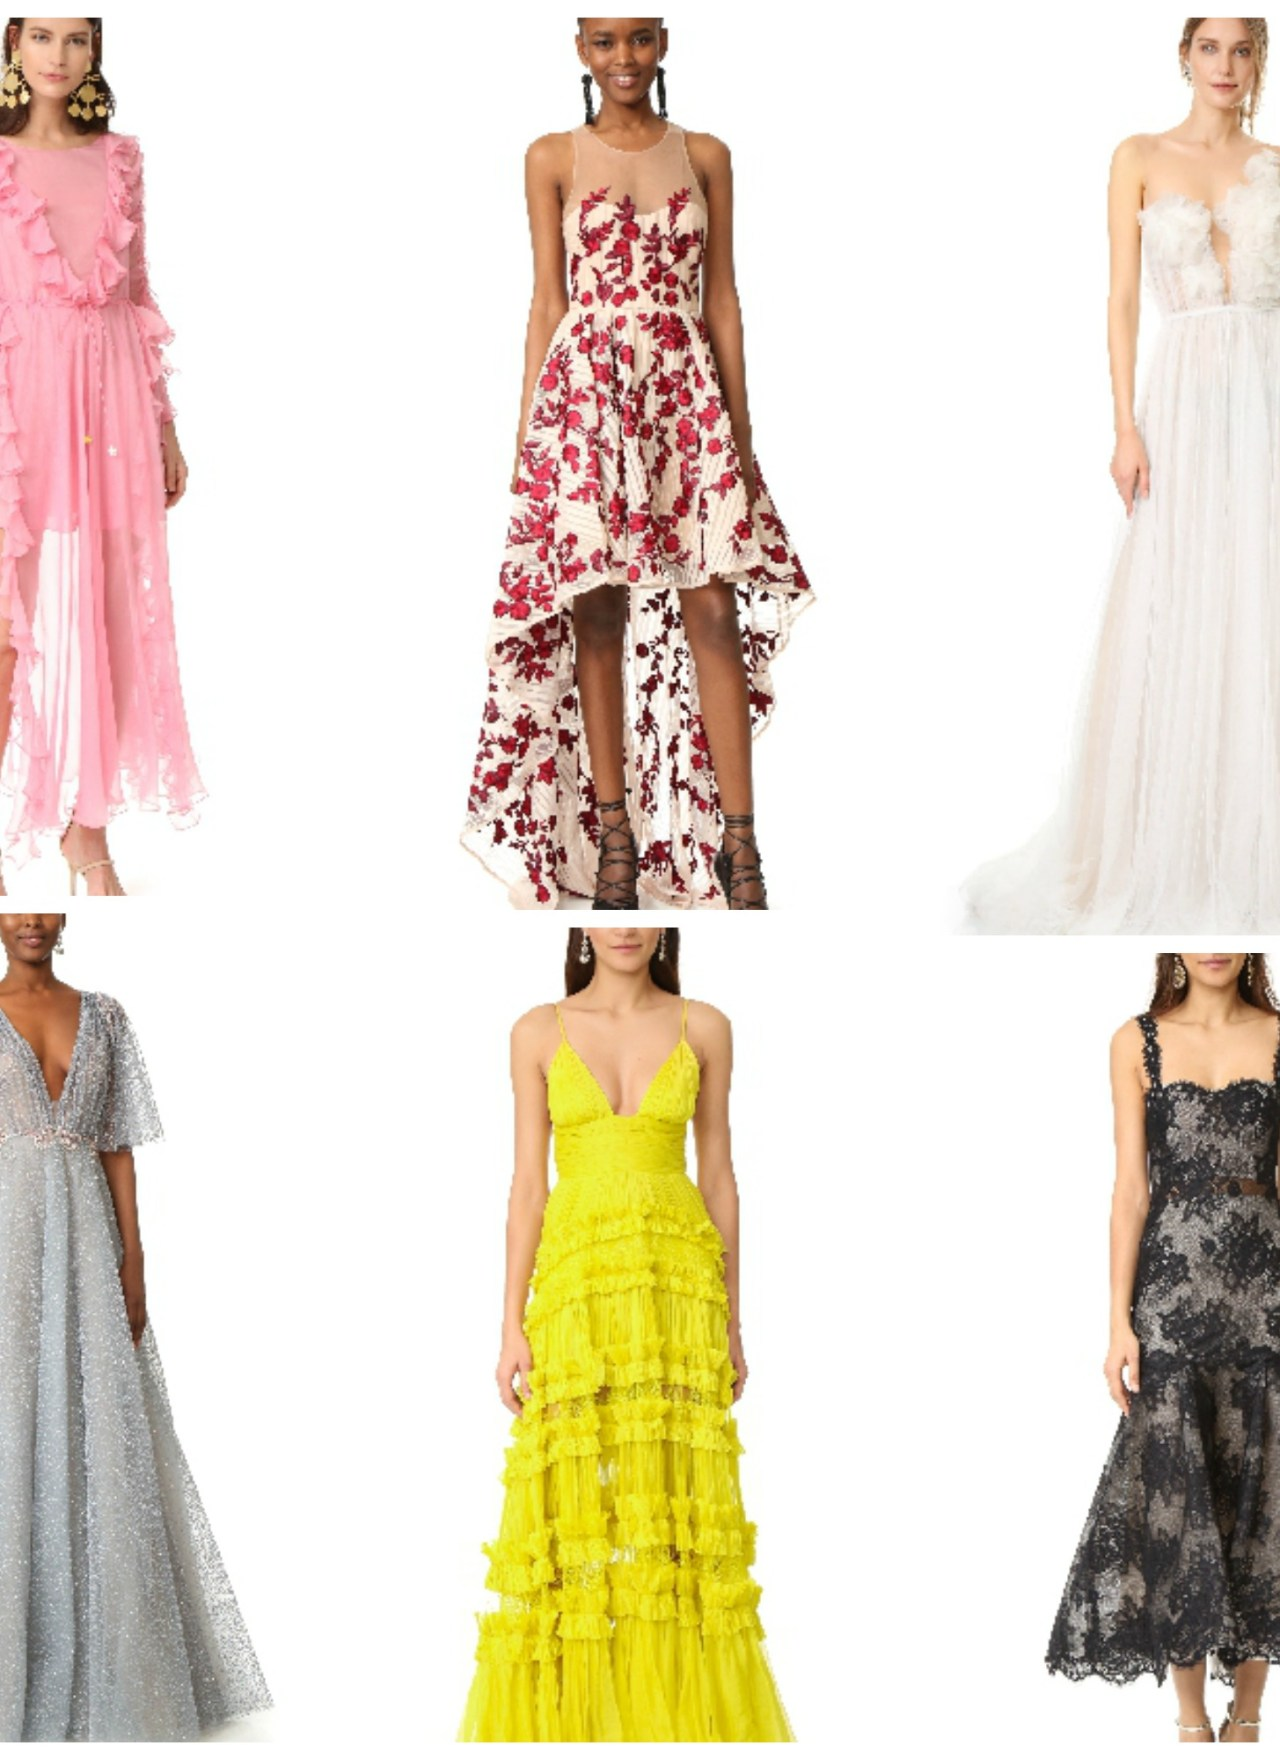 Golden Globe Gowns for Less